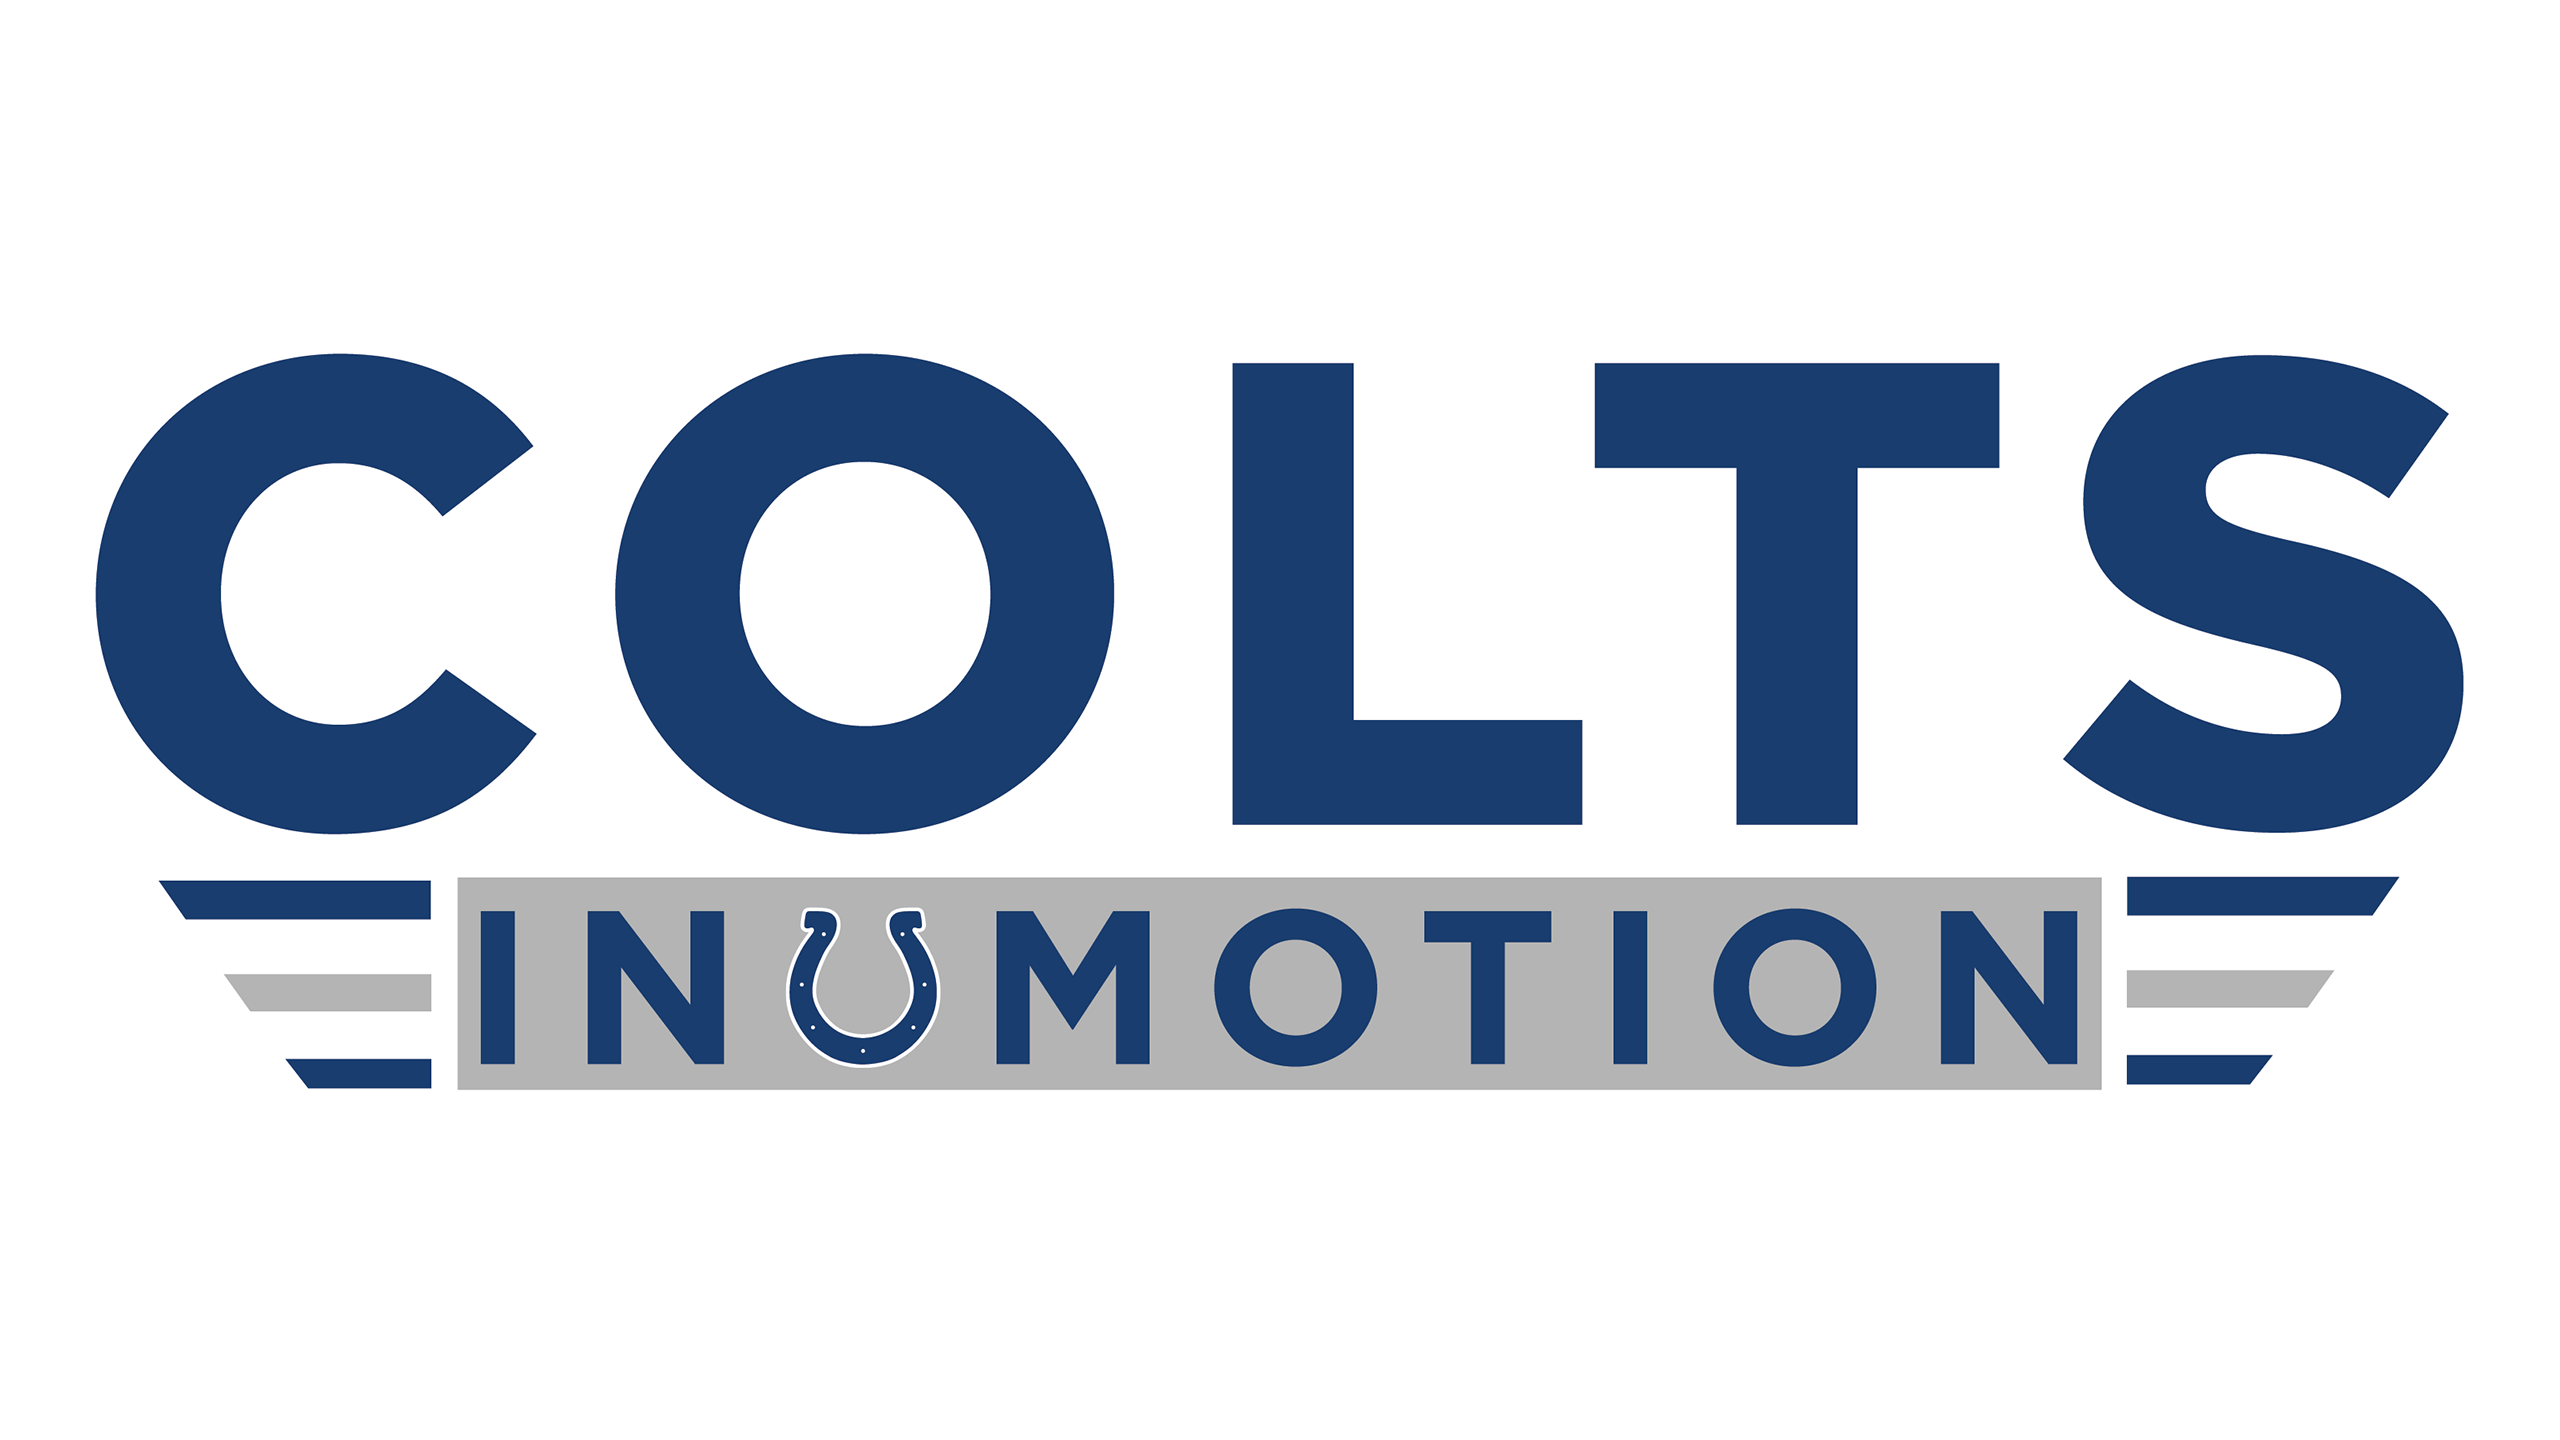 Colts In Motion Appearance Guidelines